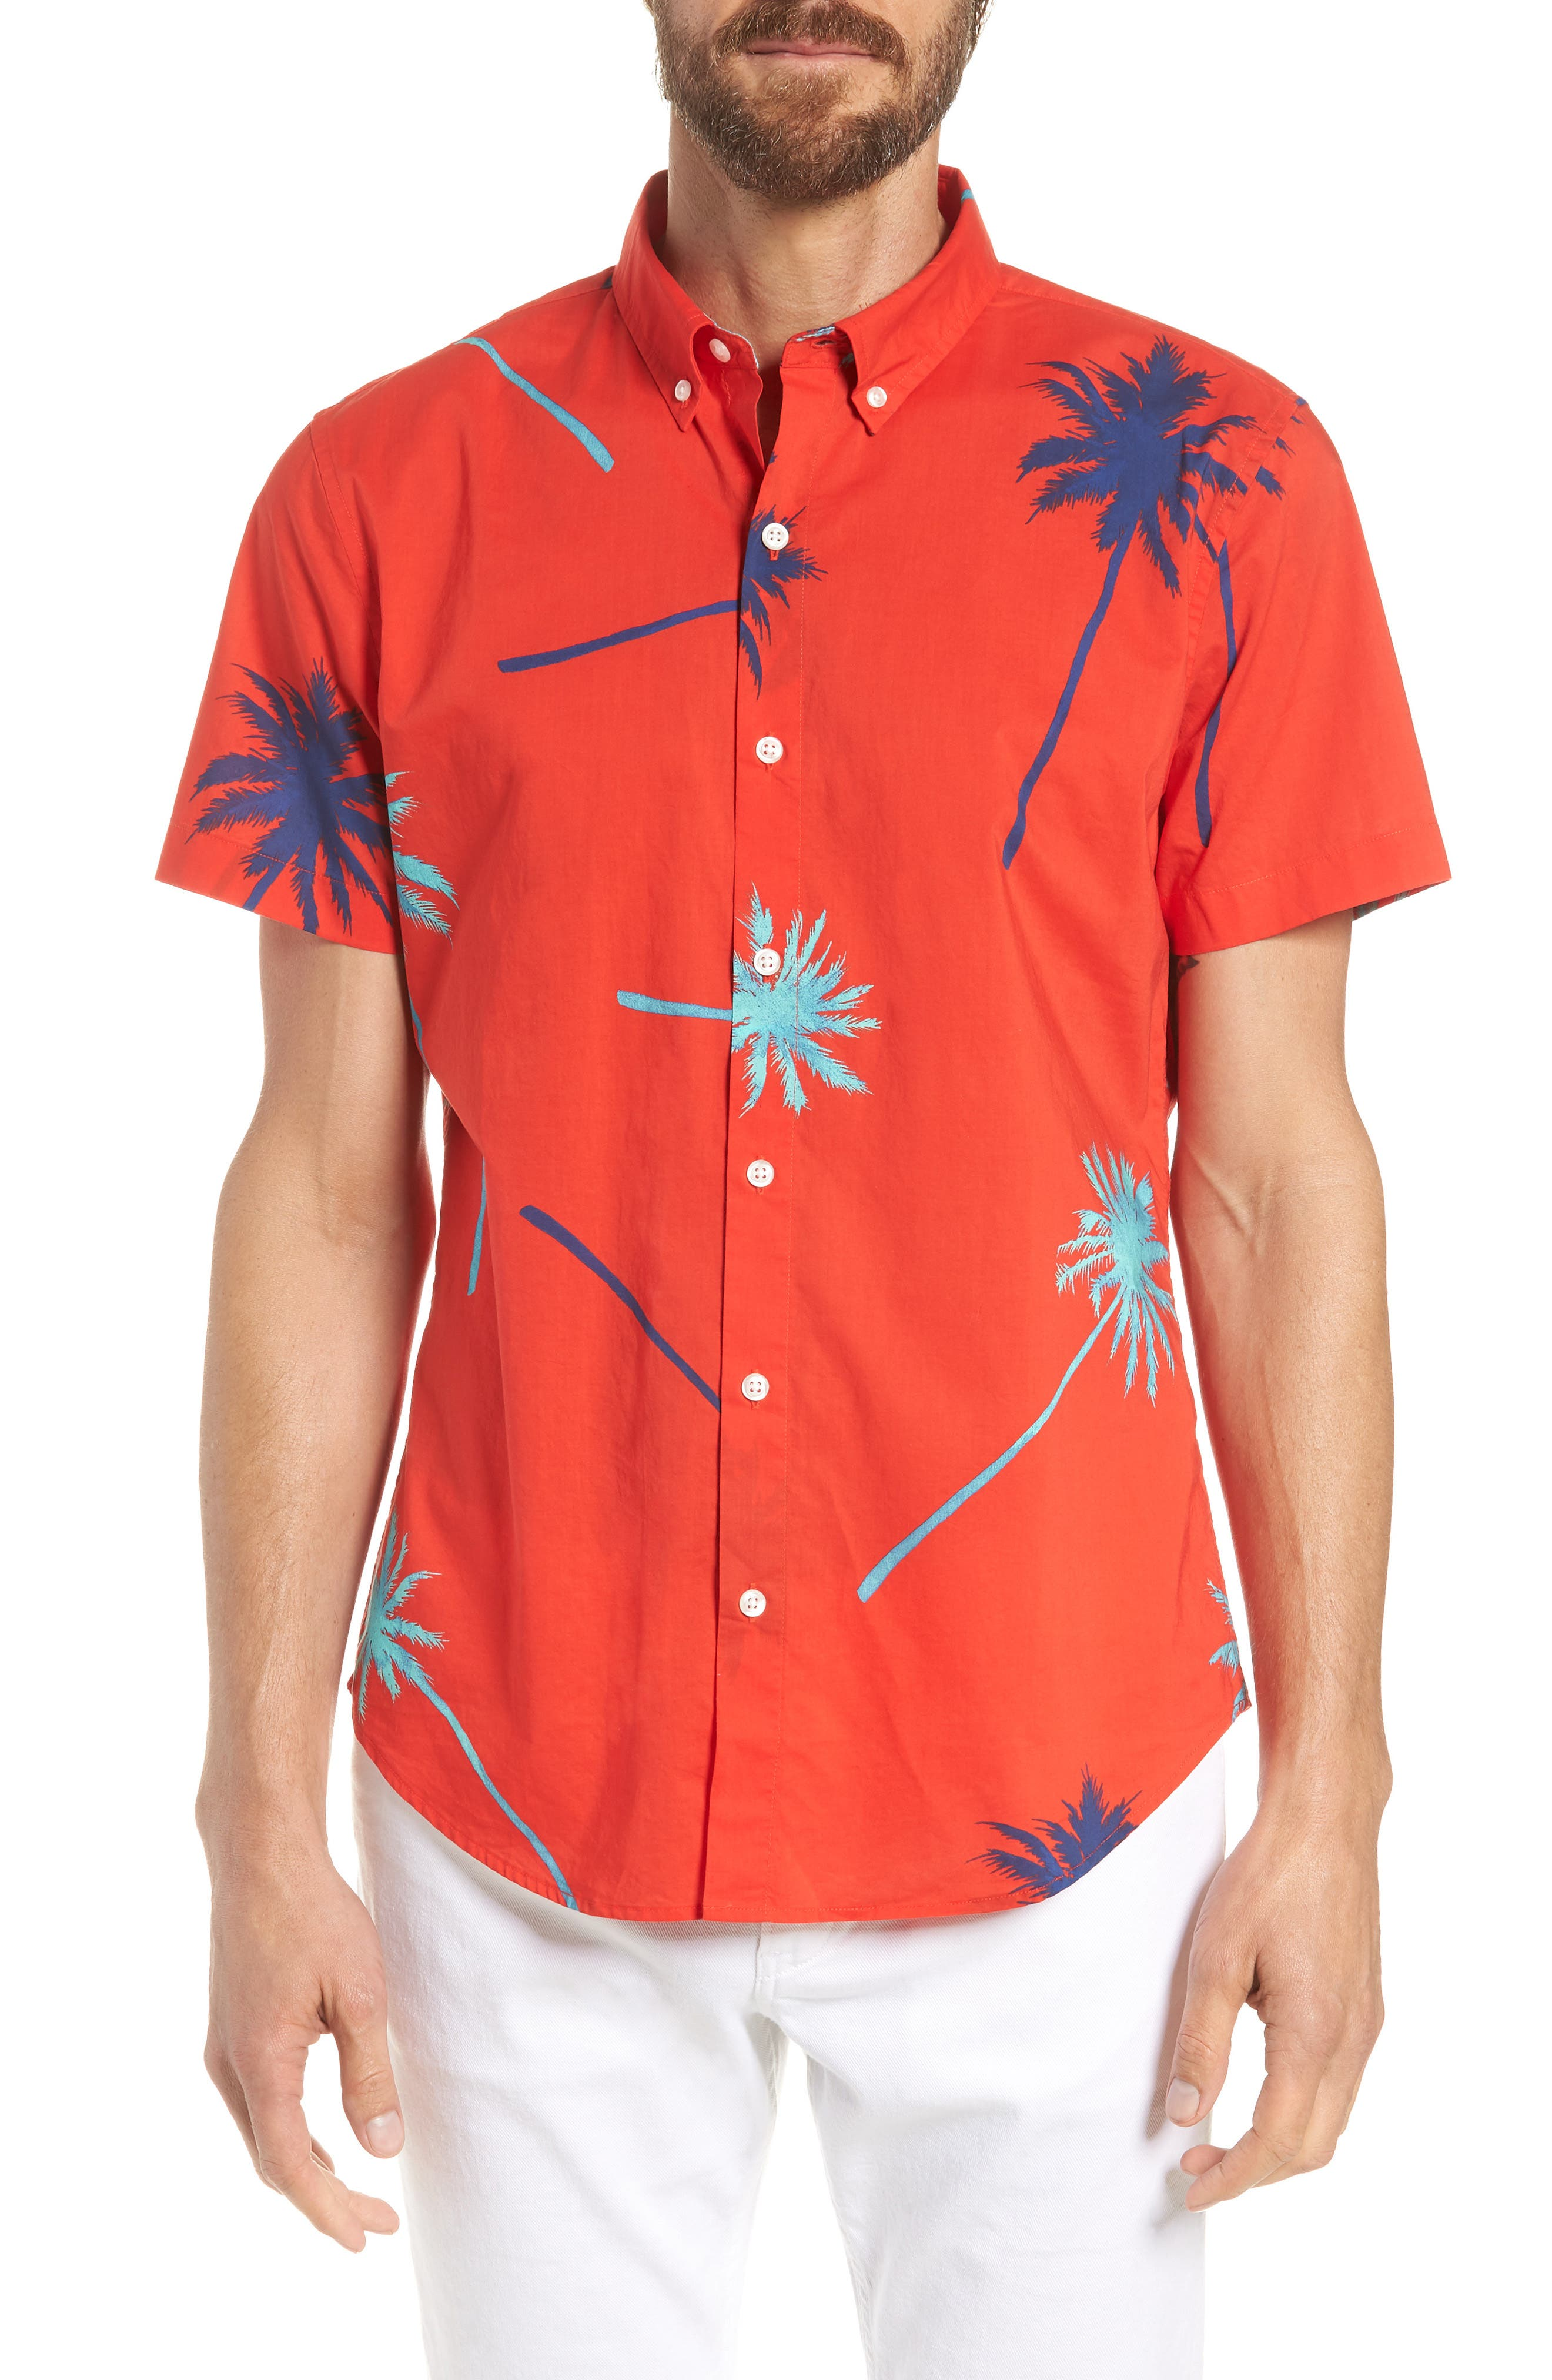 Riviera Slim Fit Palm Print Sport Shirt,                             Main thumbnail 1, color,                             Palm Tree View - Goji Berry